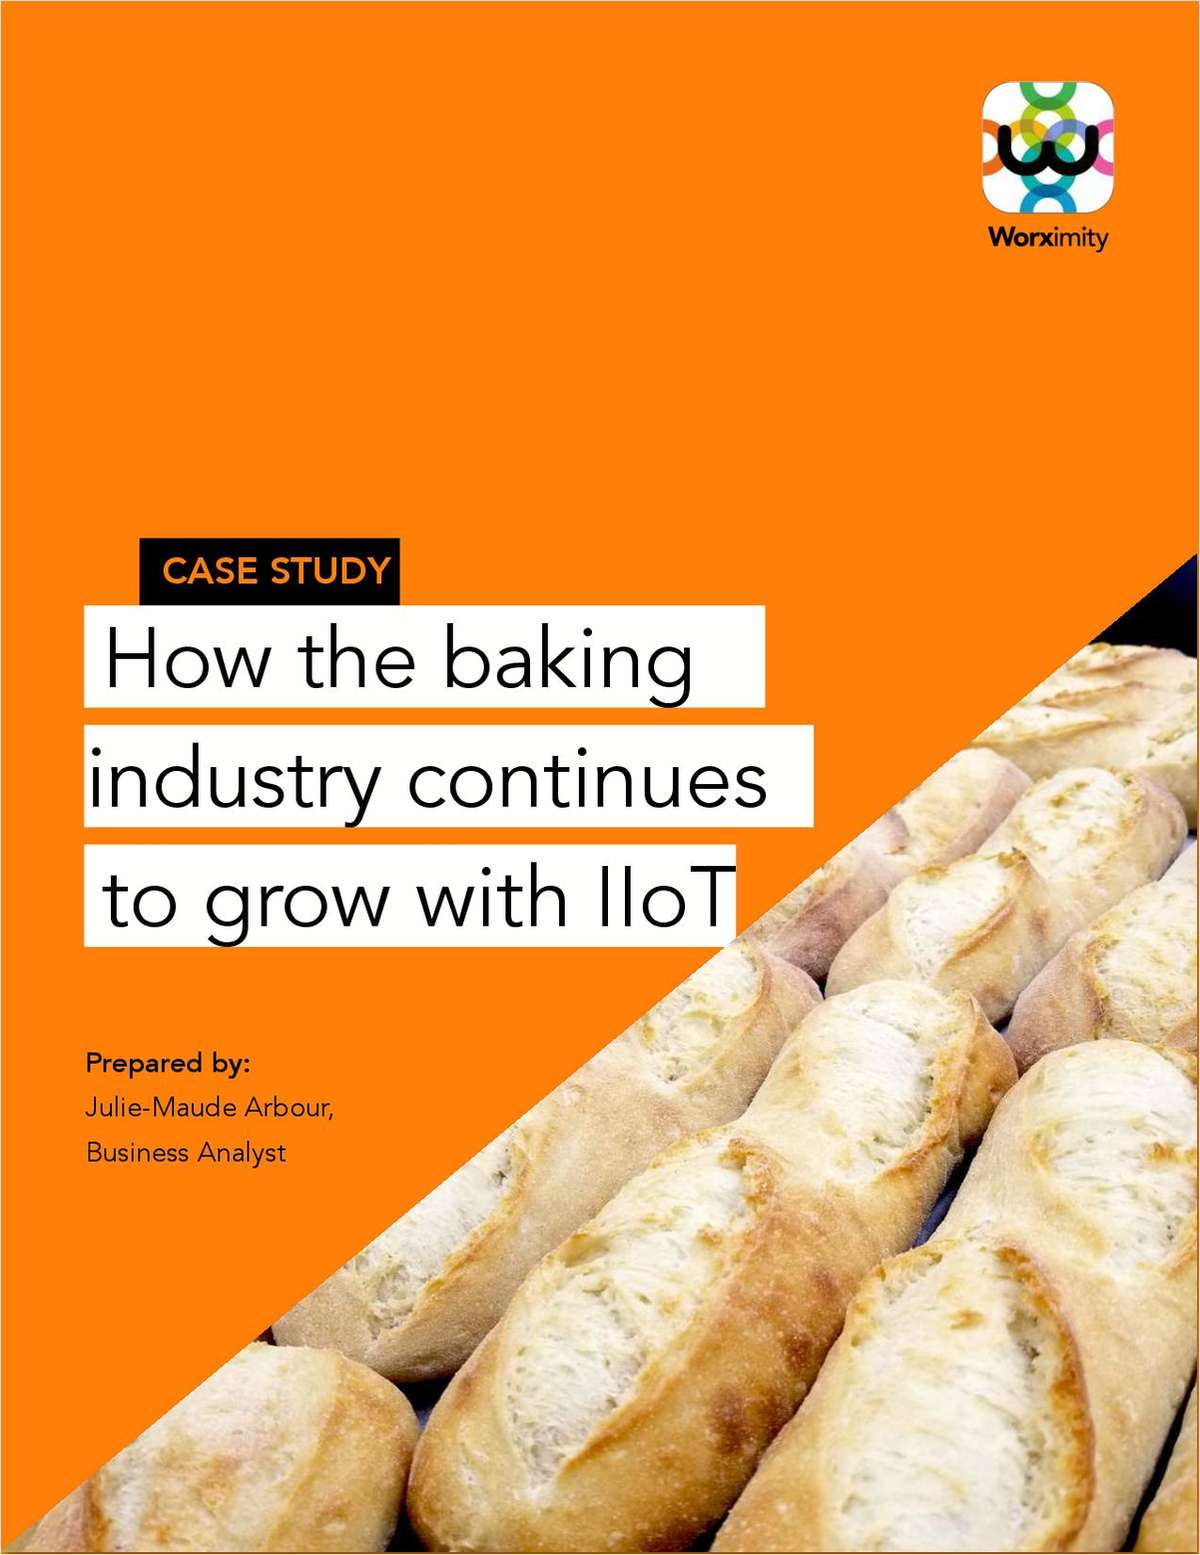 How one Manufacturer Achieved a Quick 27% Reduction in Downtime from IIoT Implementation